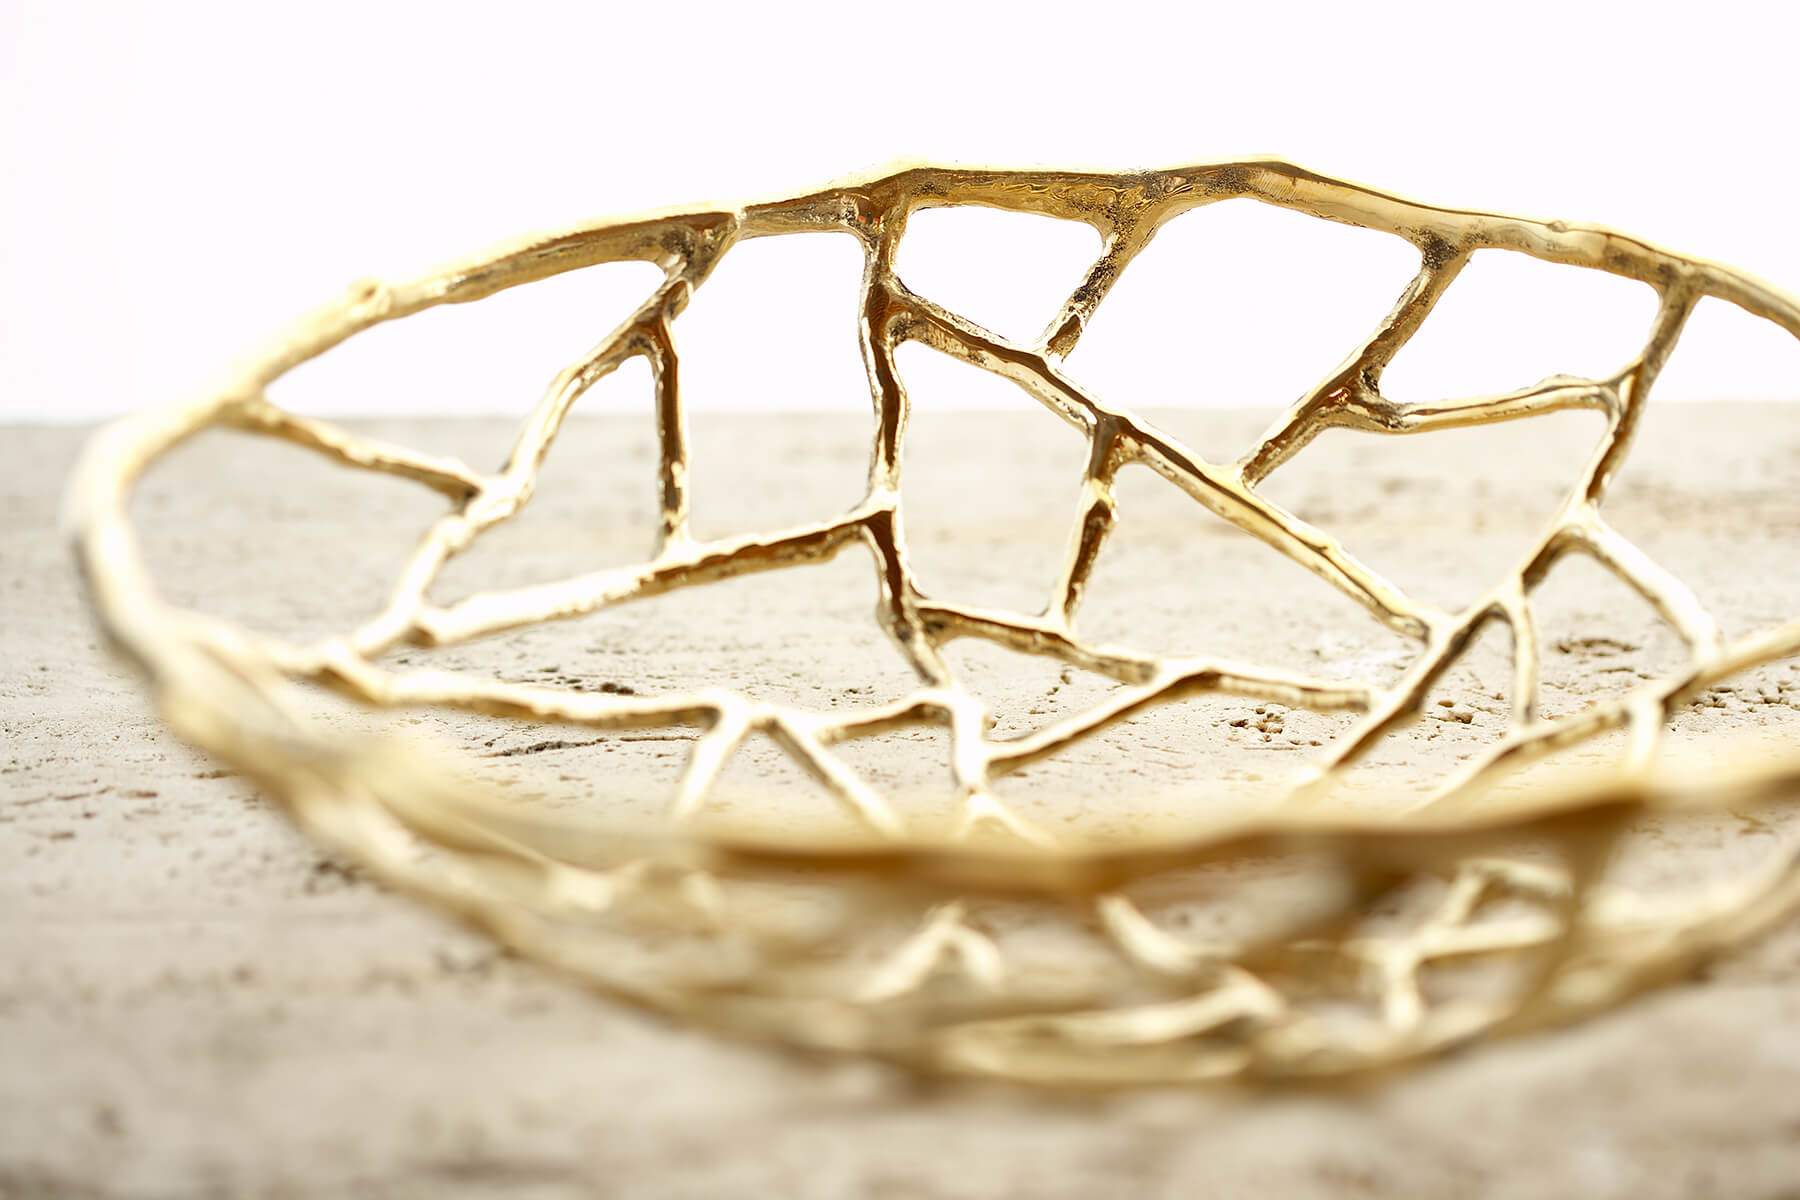 gold twig bowl interior design photography